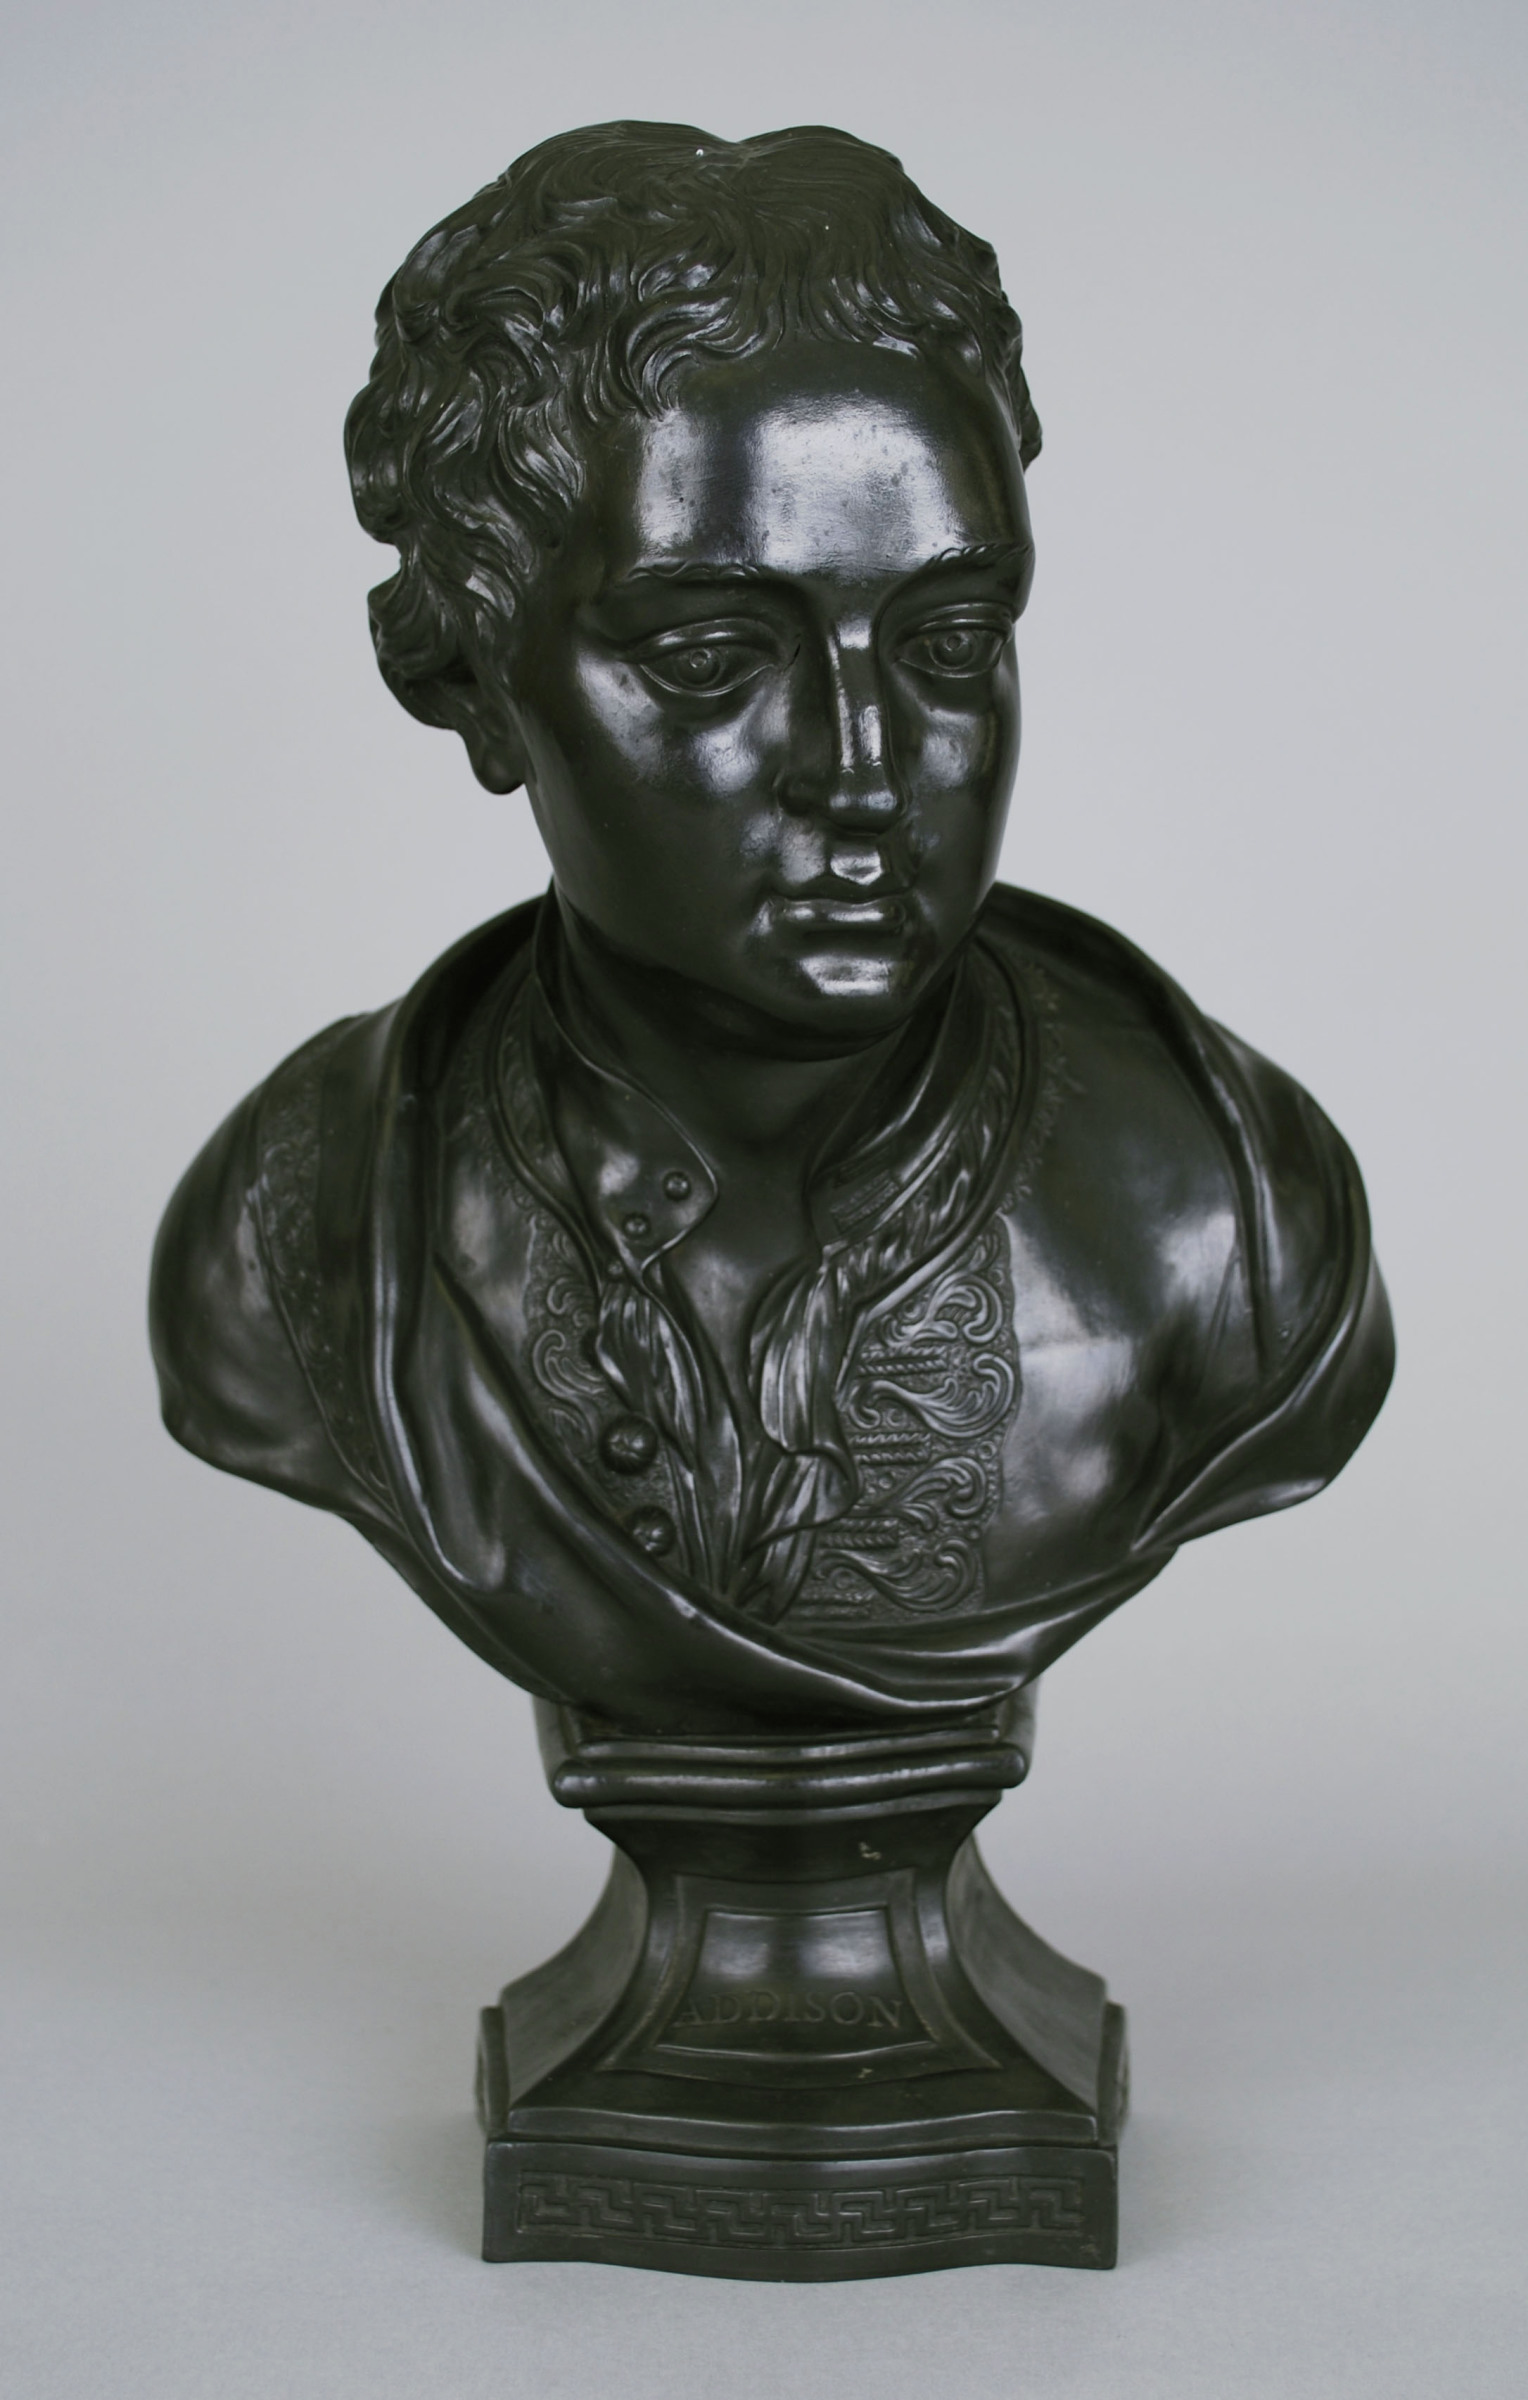 Bust of the English poet, playwright and politician Joseph Addison (1672-1719) in black basalt made in one mold with hollow body and flat back, the socle square with bombay front and small reserve in which the name ADDISON and with a Greek key border along the lower edge, Addison depicted with short hair in civilian dress with loose shirt with open collar and embroidered jacket, with drapery that features embroidered trim.